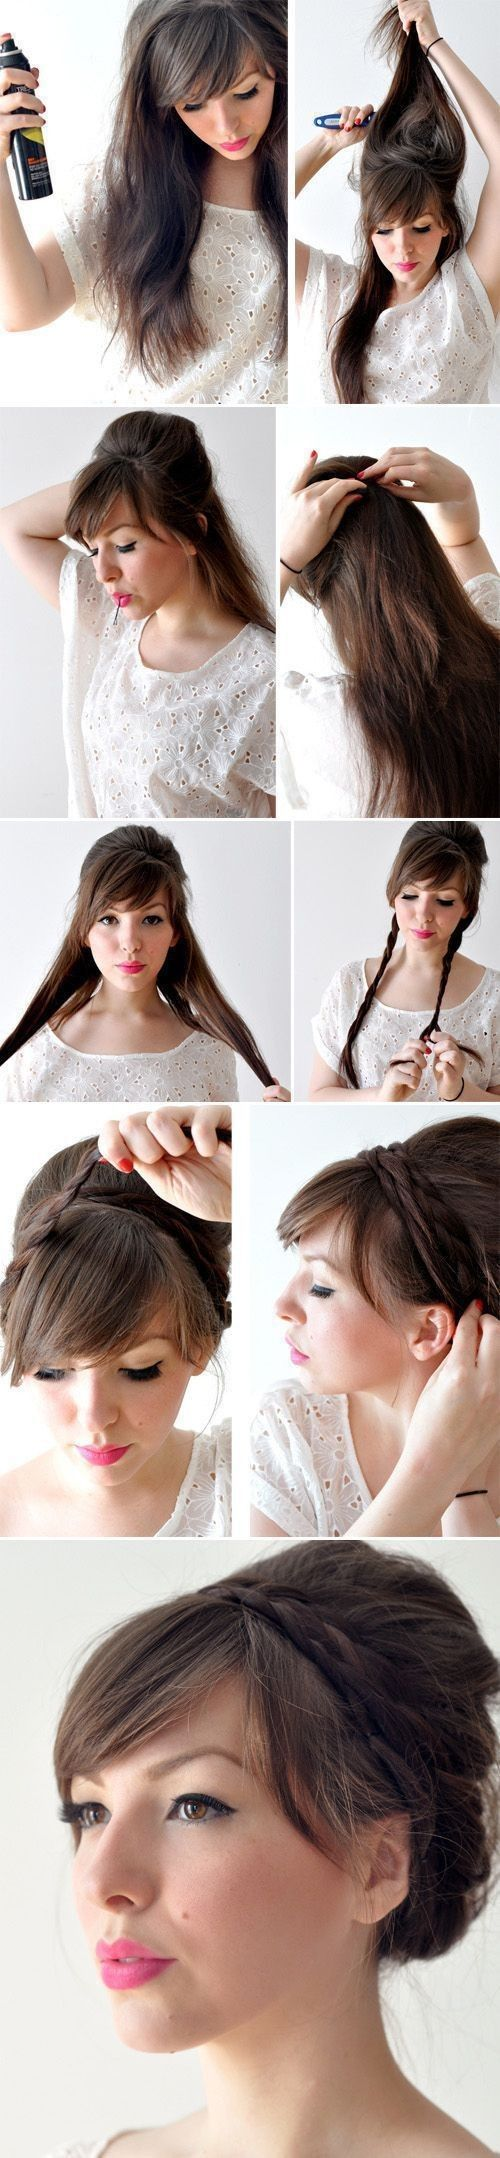 Easy to do hairstyles easy step by step hairstyles fashion